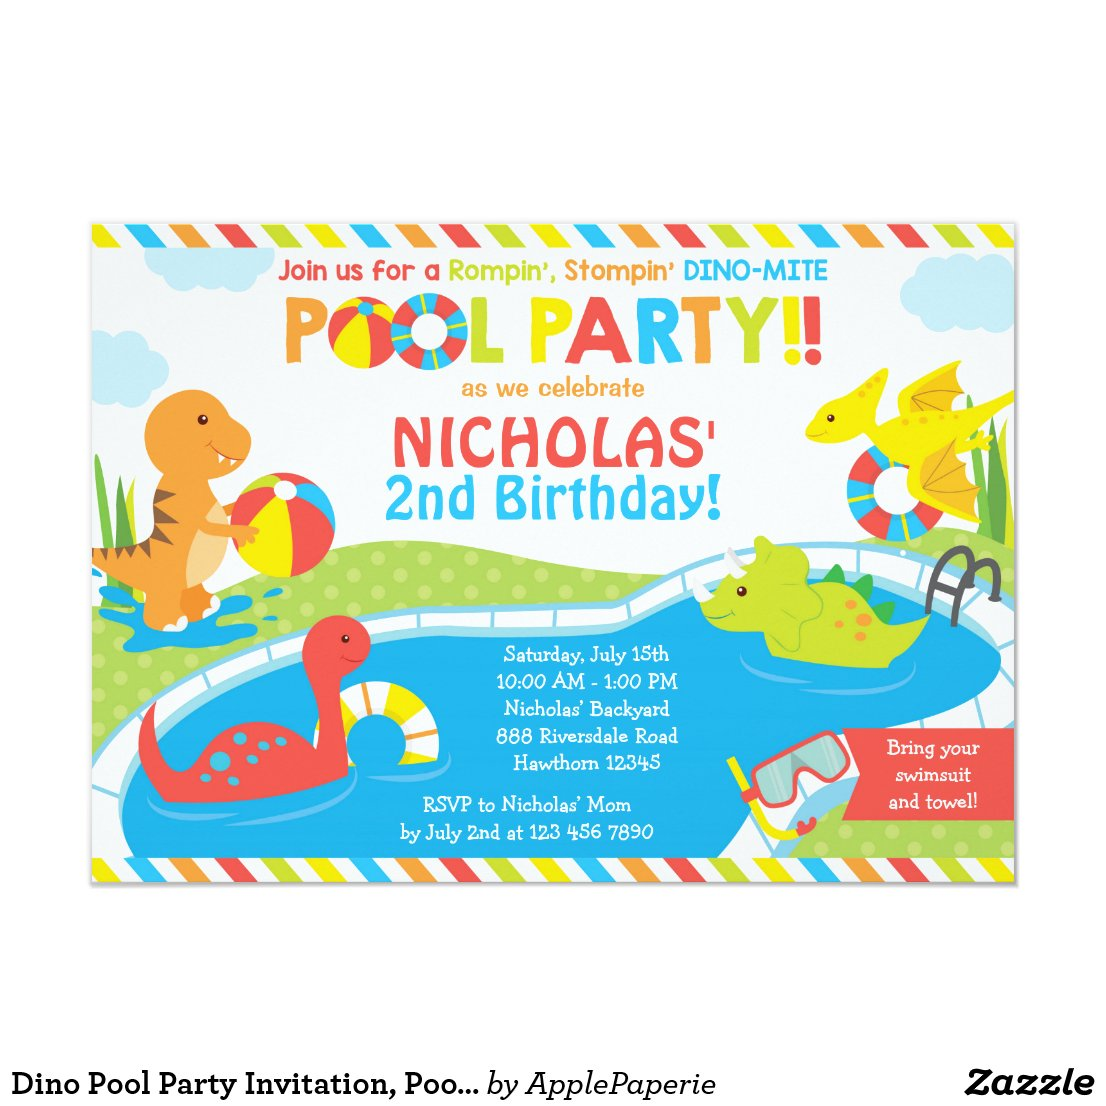 Dino Pool Party Invitation, Pool Party Invite